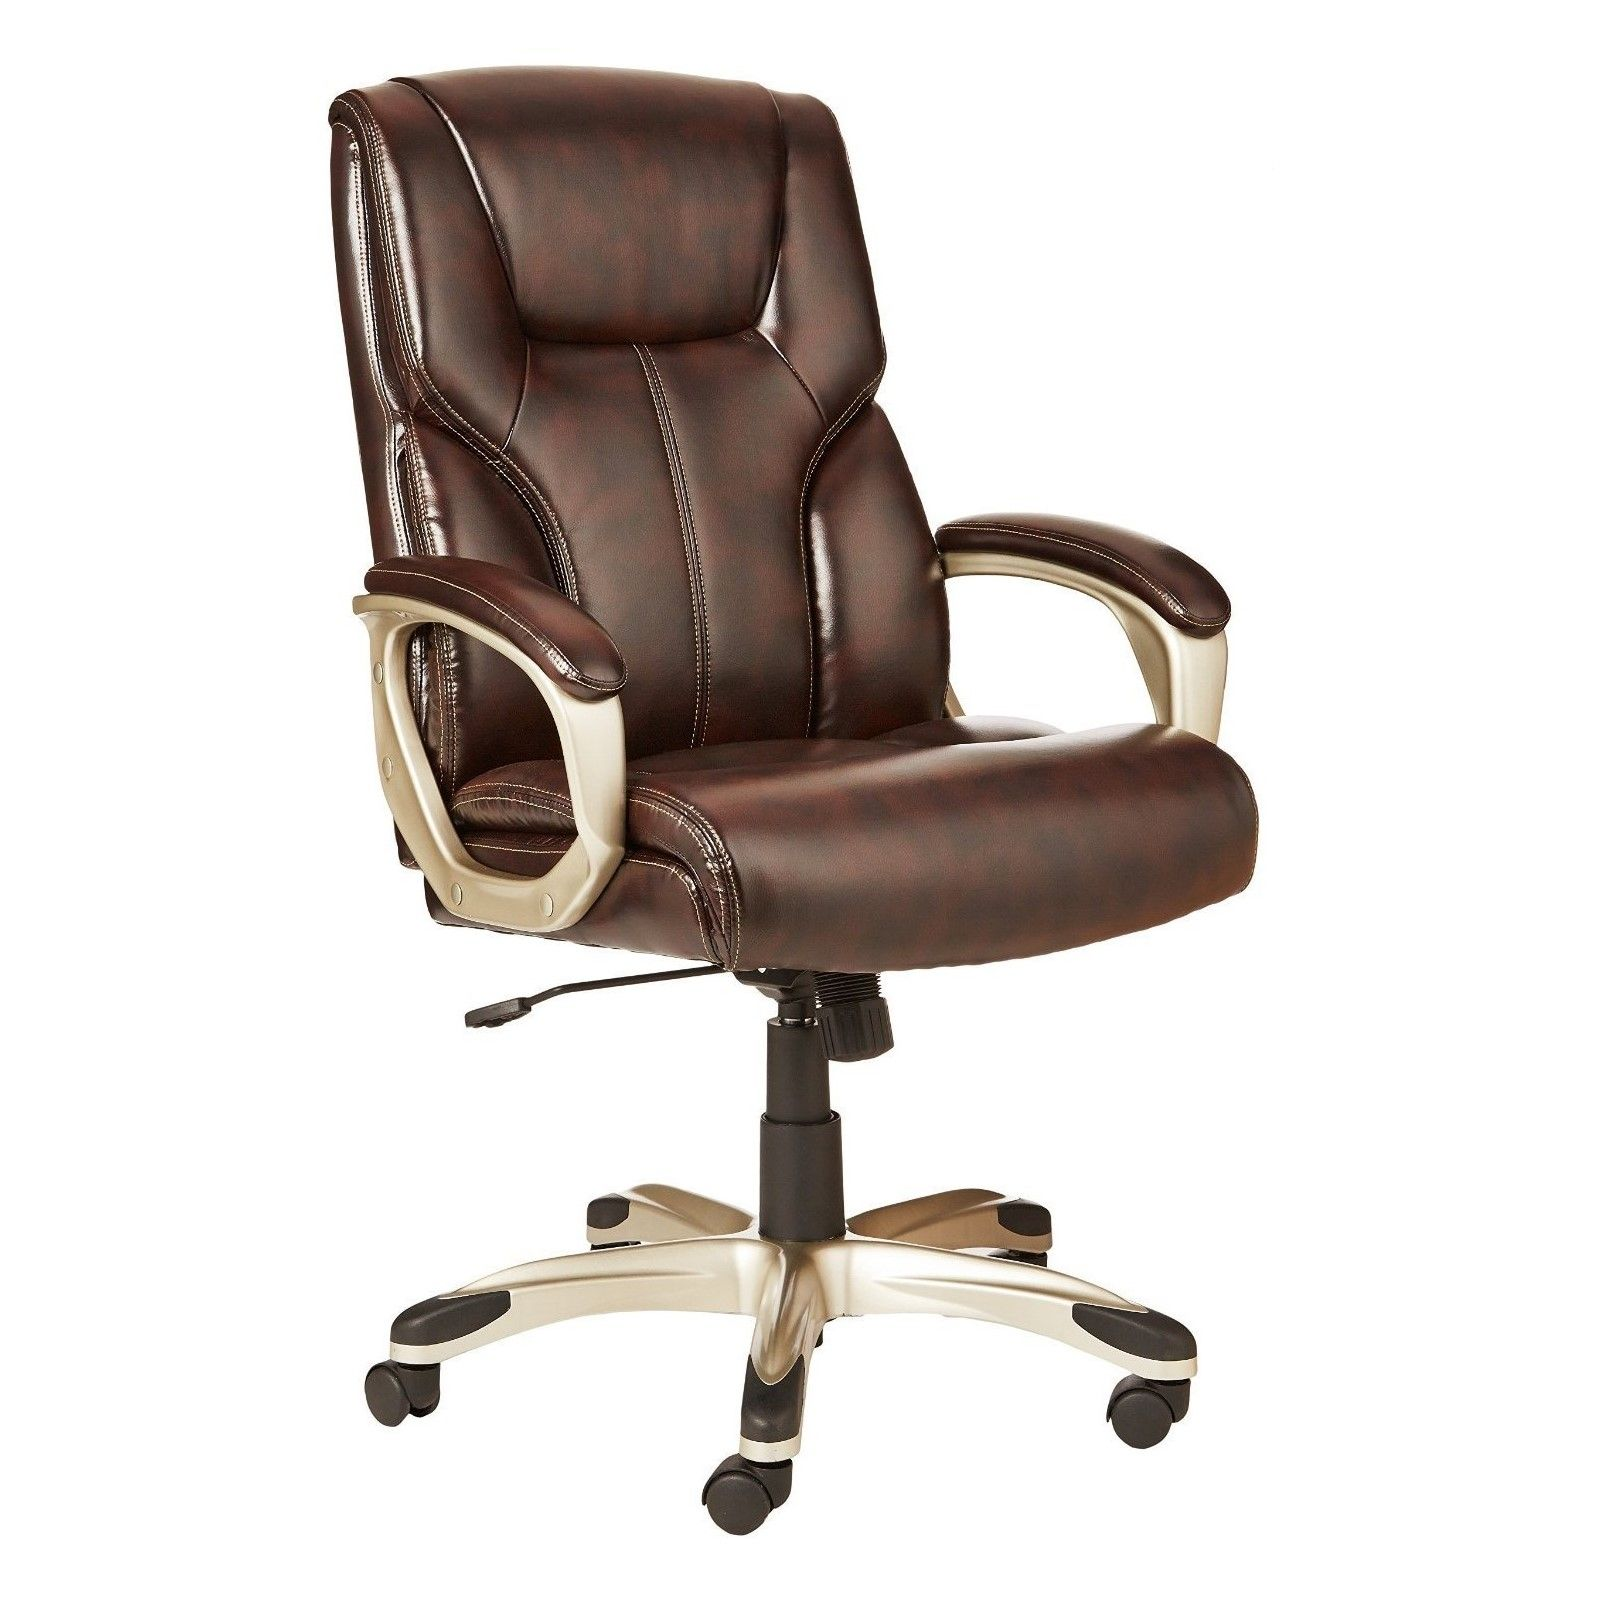 HighBack Executive Reclining Office Chair Brown High